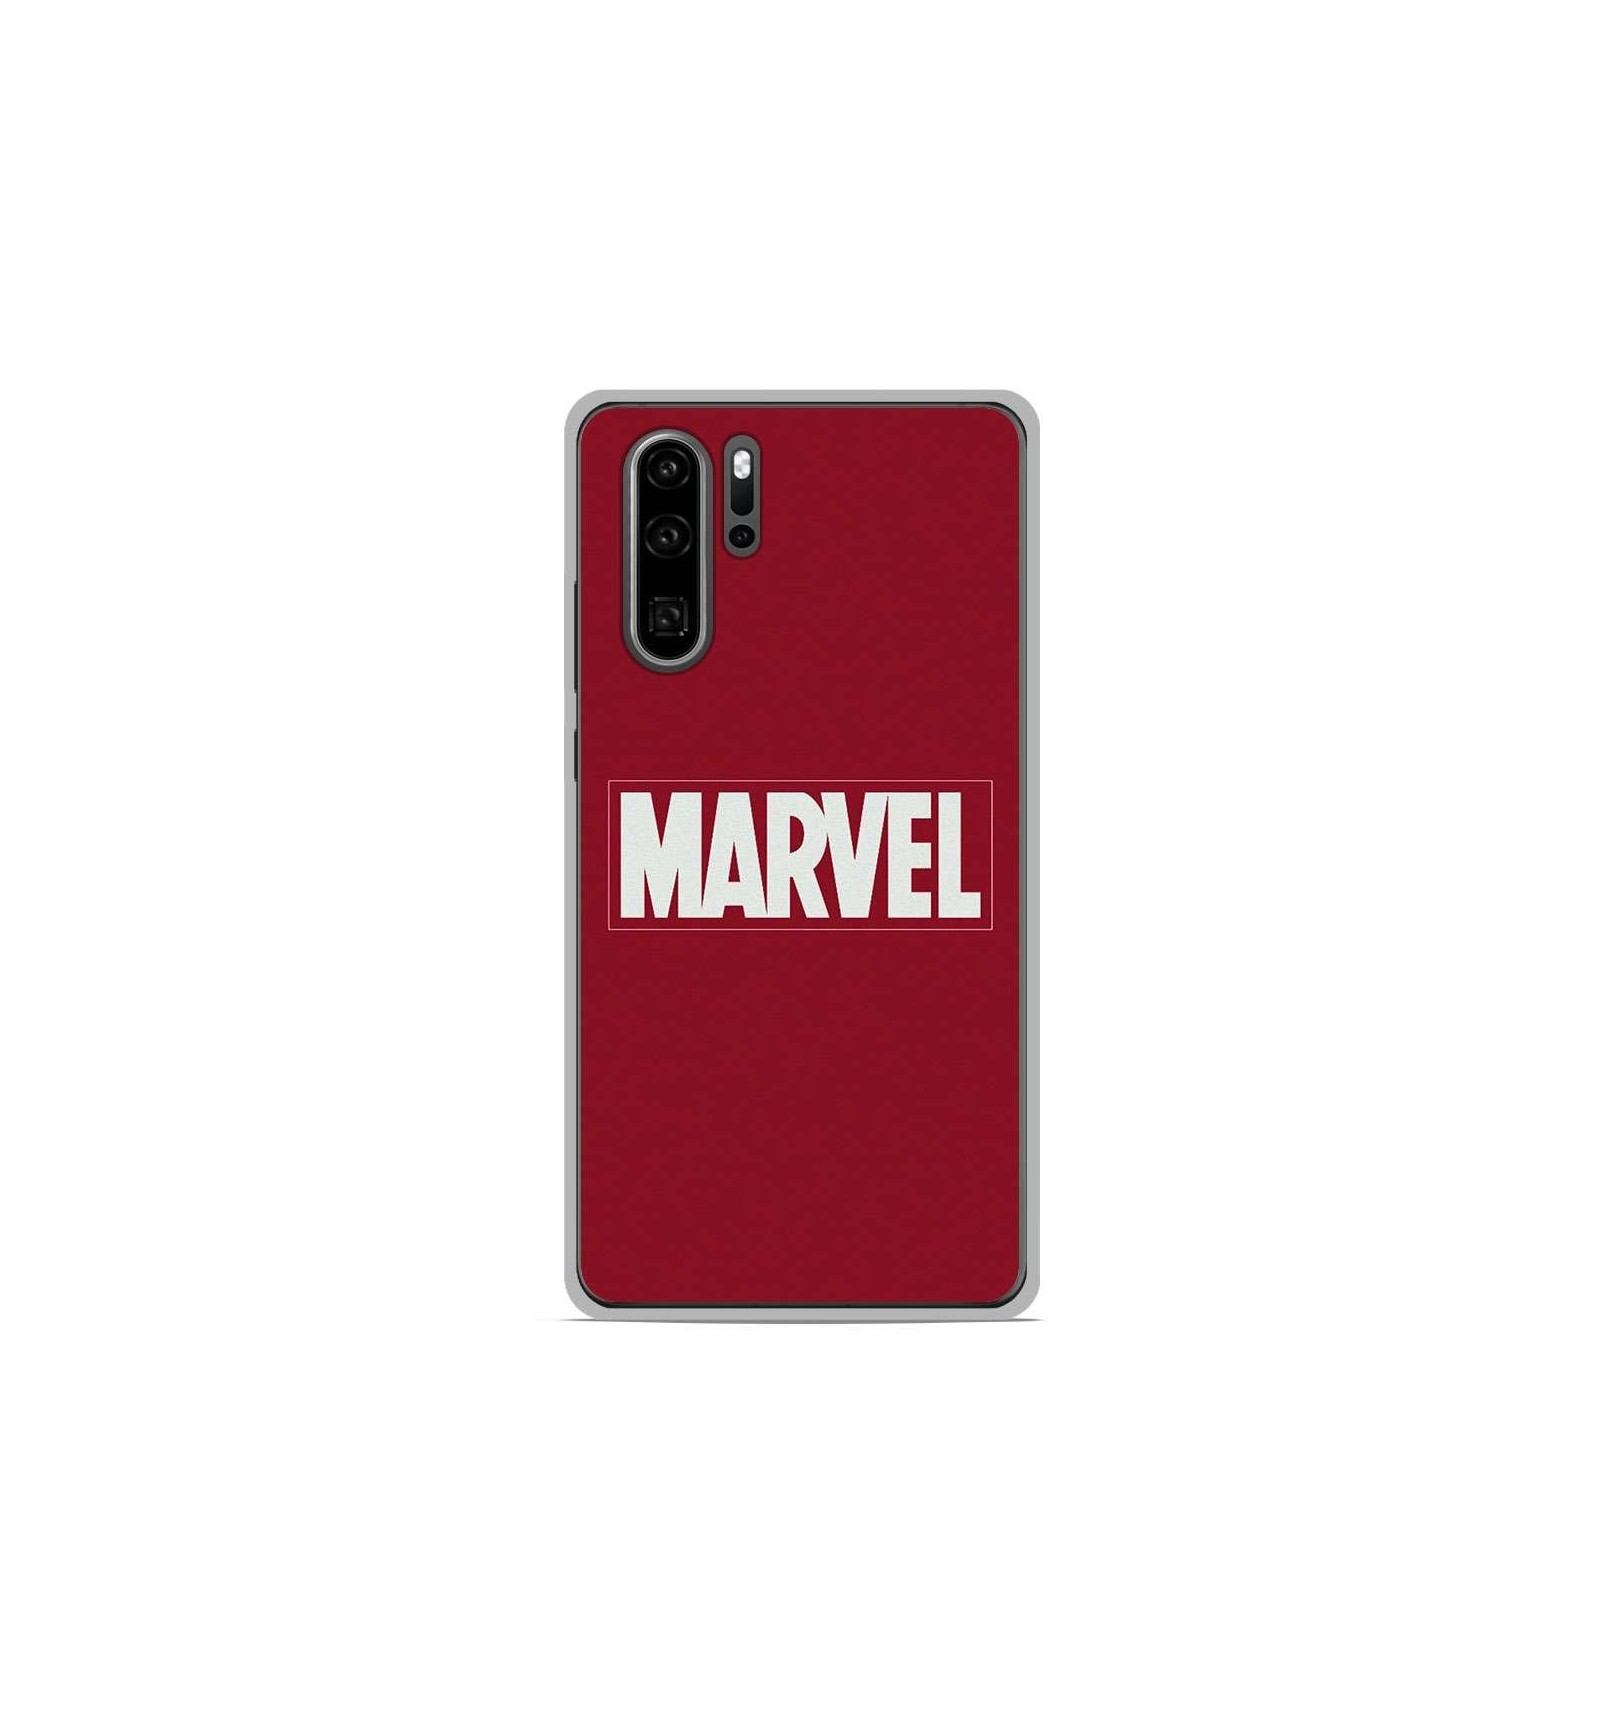 coque p30 pro huawei silicone